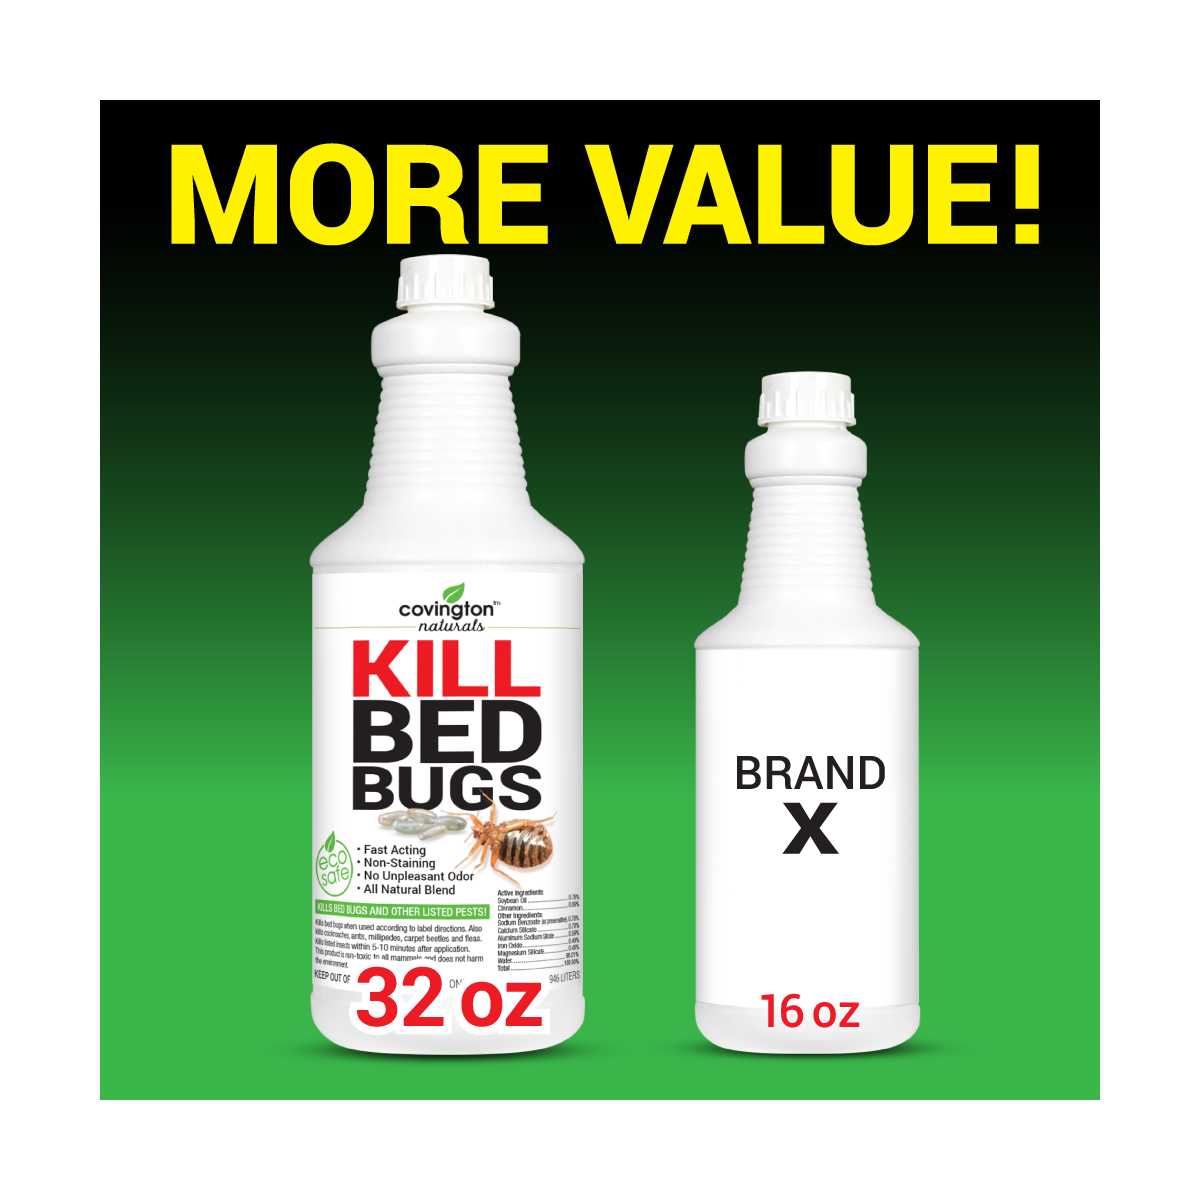 Bed Bug Spray for Home, Large (32 OZ) Quart, Effective Up to 30 Days - Win the Bed Bug War